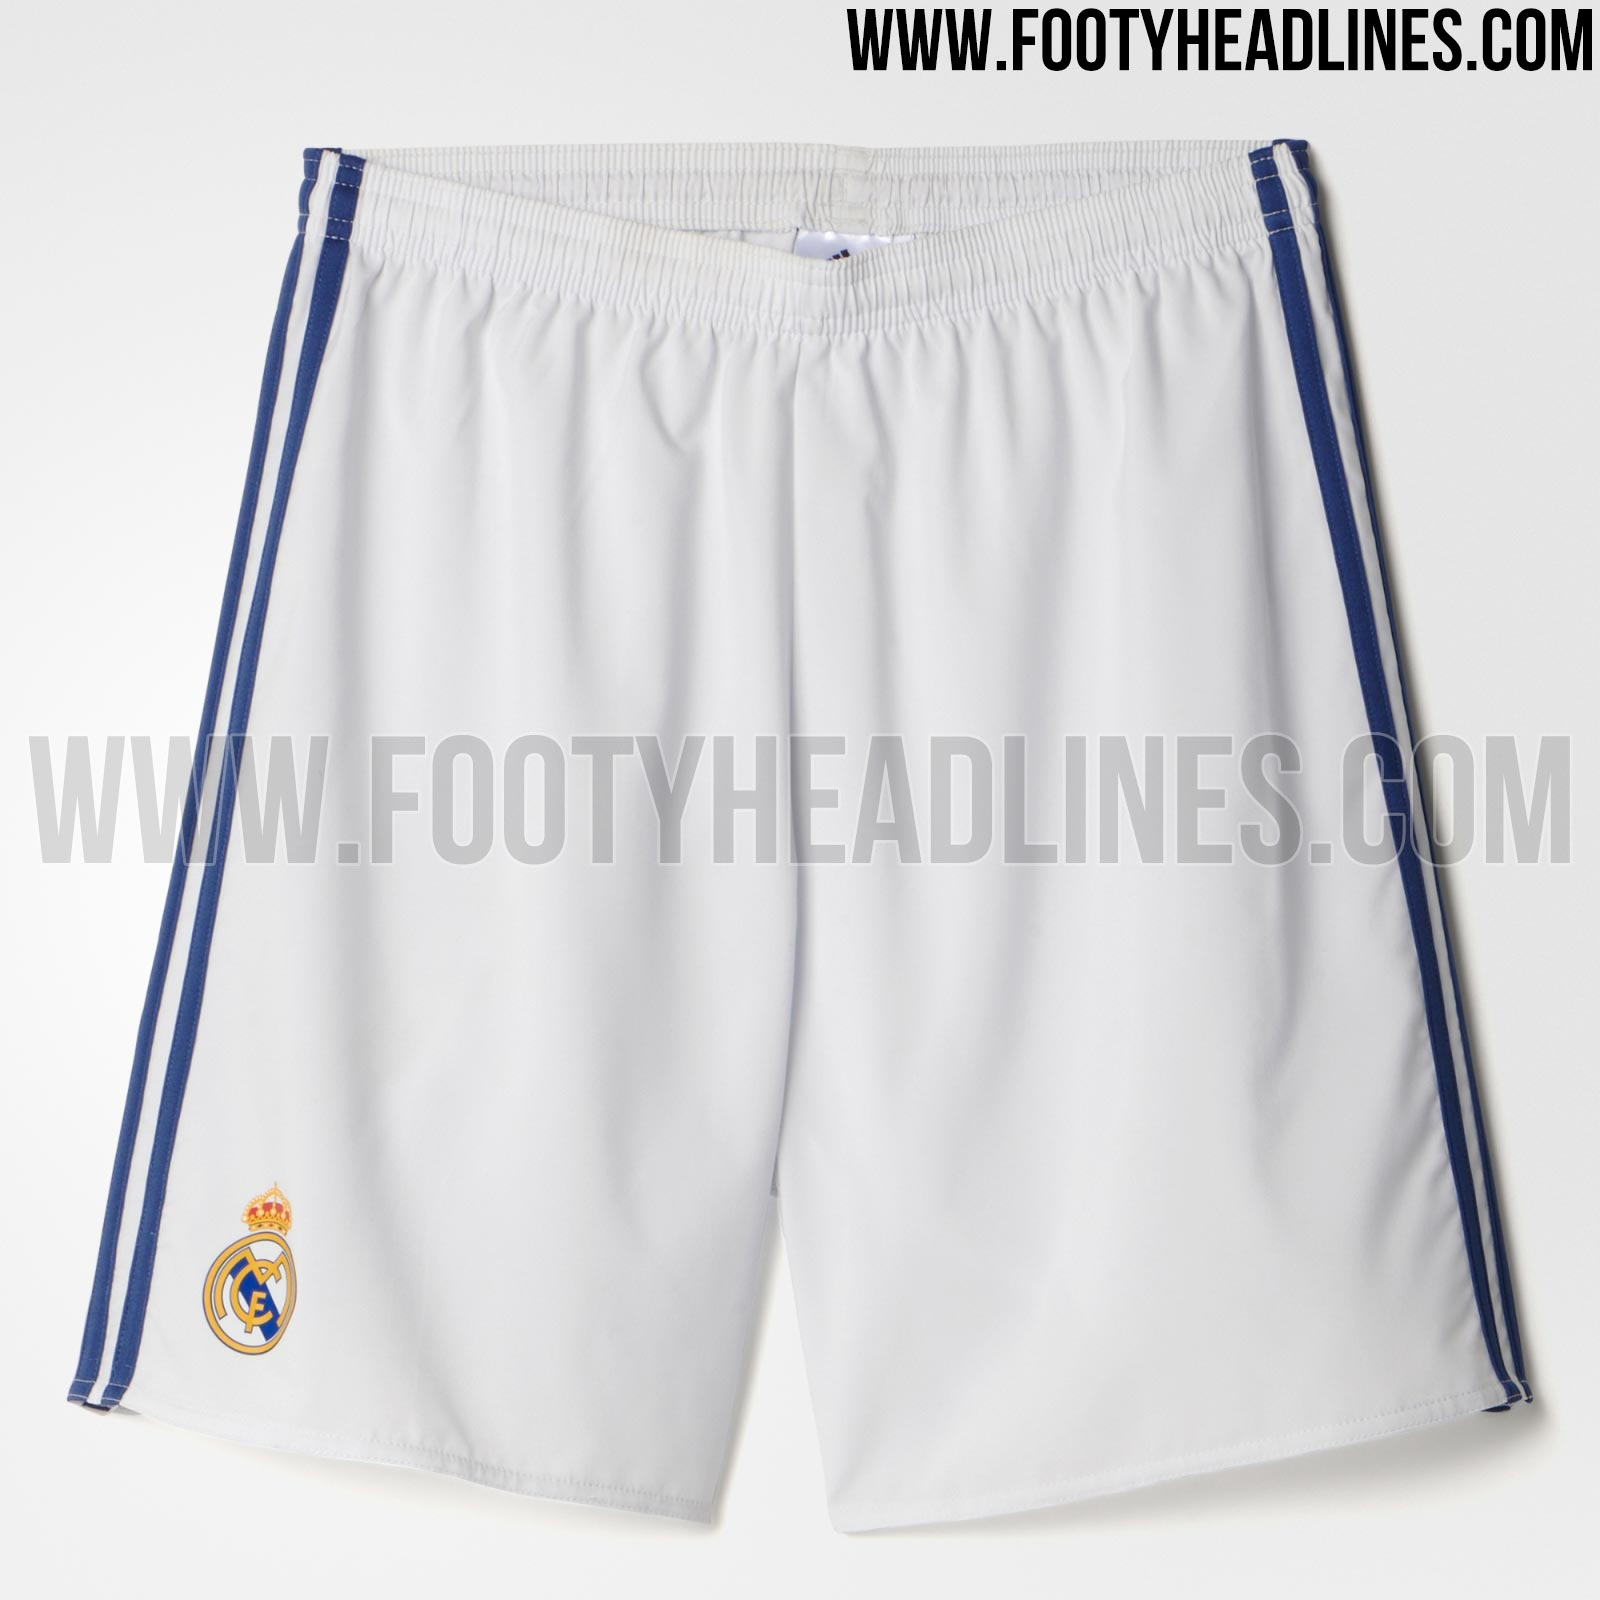 ef2e3fbe1 The last Real Madrid kit to boast purple as secondary color was the 2007-08  Real Madrid home kit.